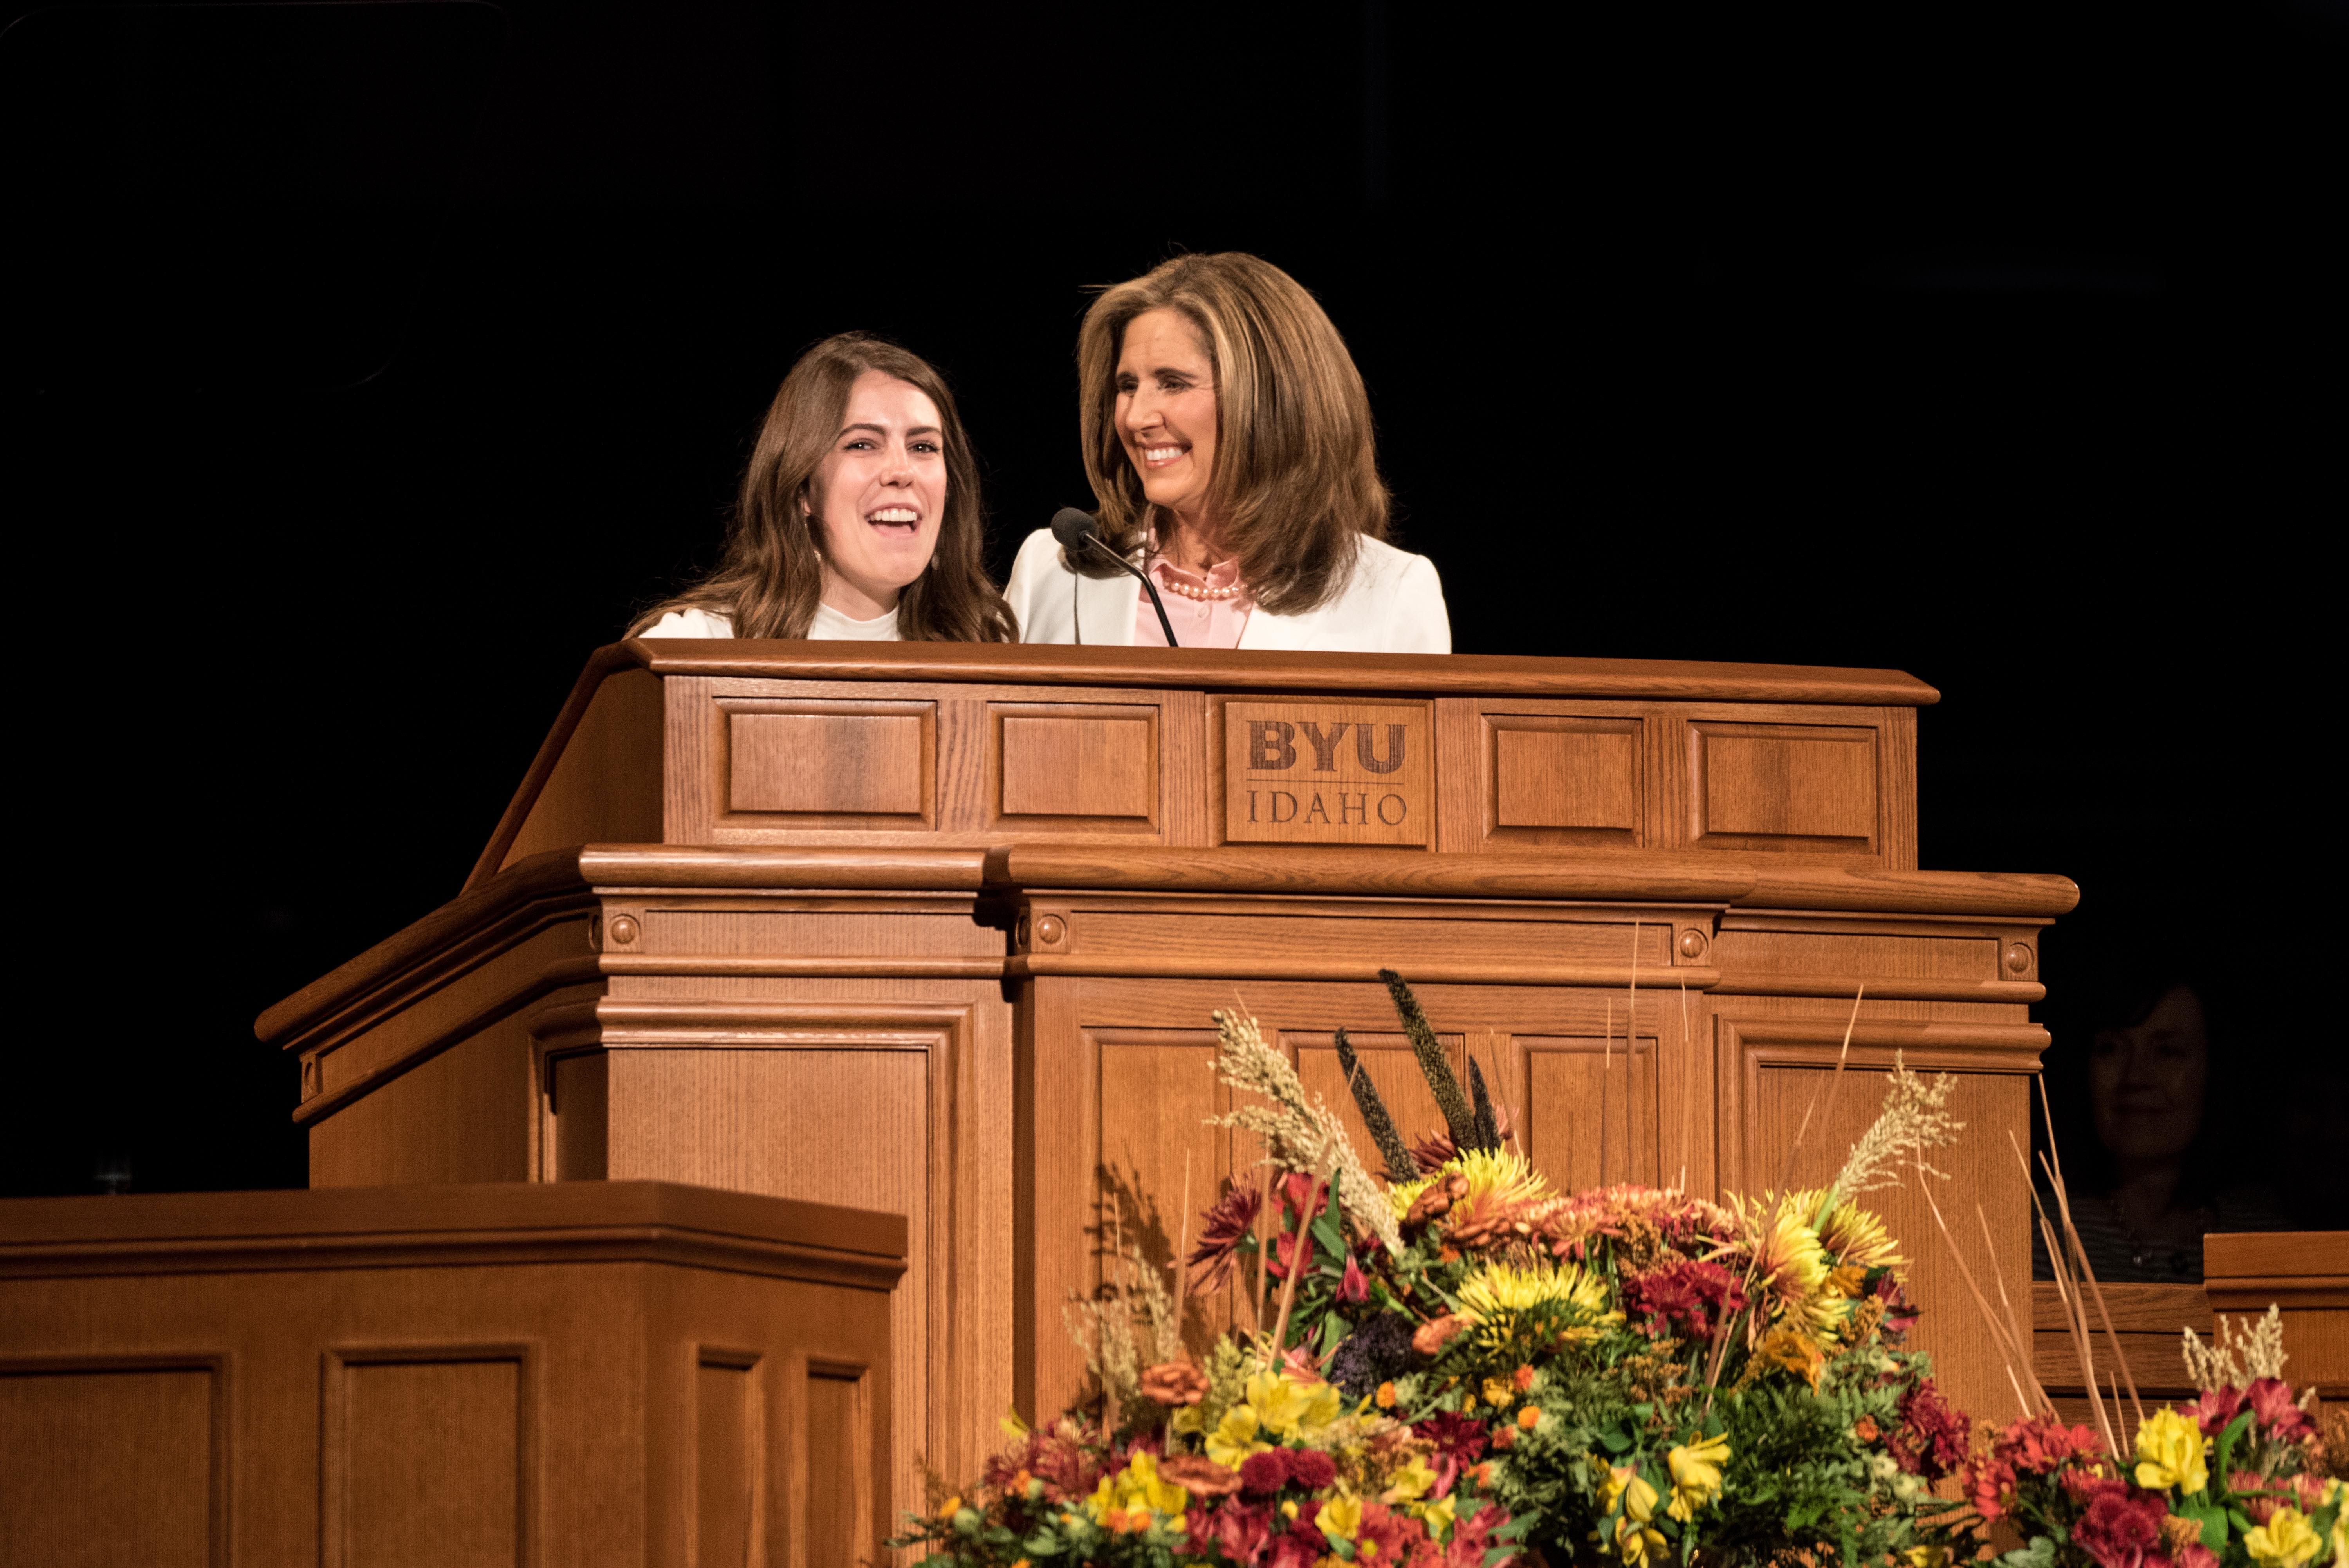 Standing next to Sister Kelly Eyring, a student shares an insight with the audience at Devotional in the BYU-Idaho Center on September 24, 2019.